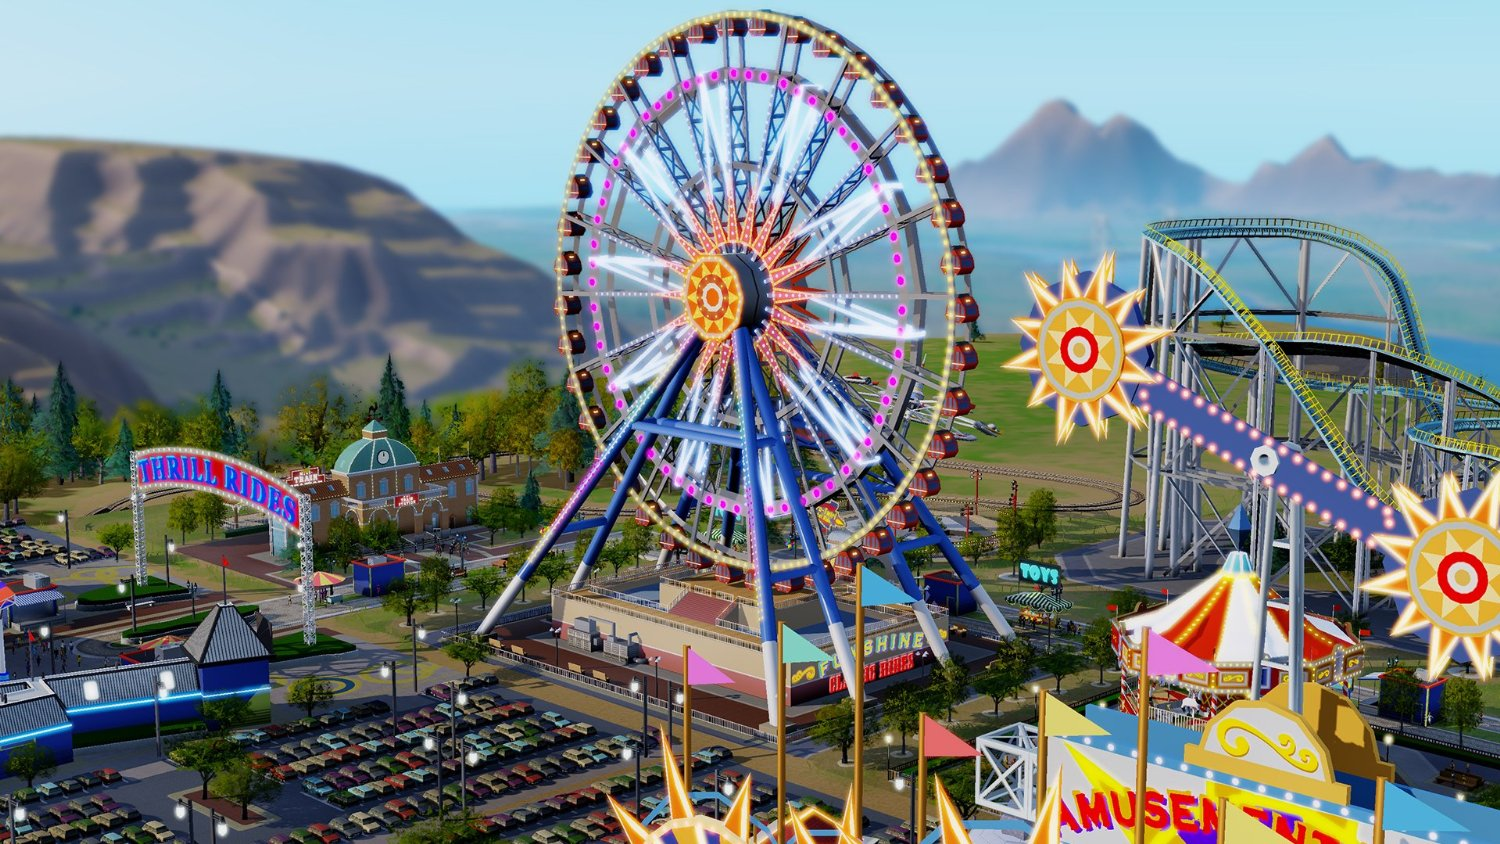 5 Amusement Parks In Mumbai For Some Thrill And Adventure Aha Taxis Blog